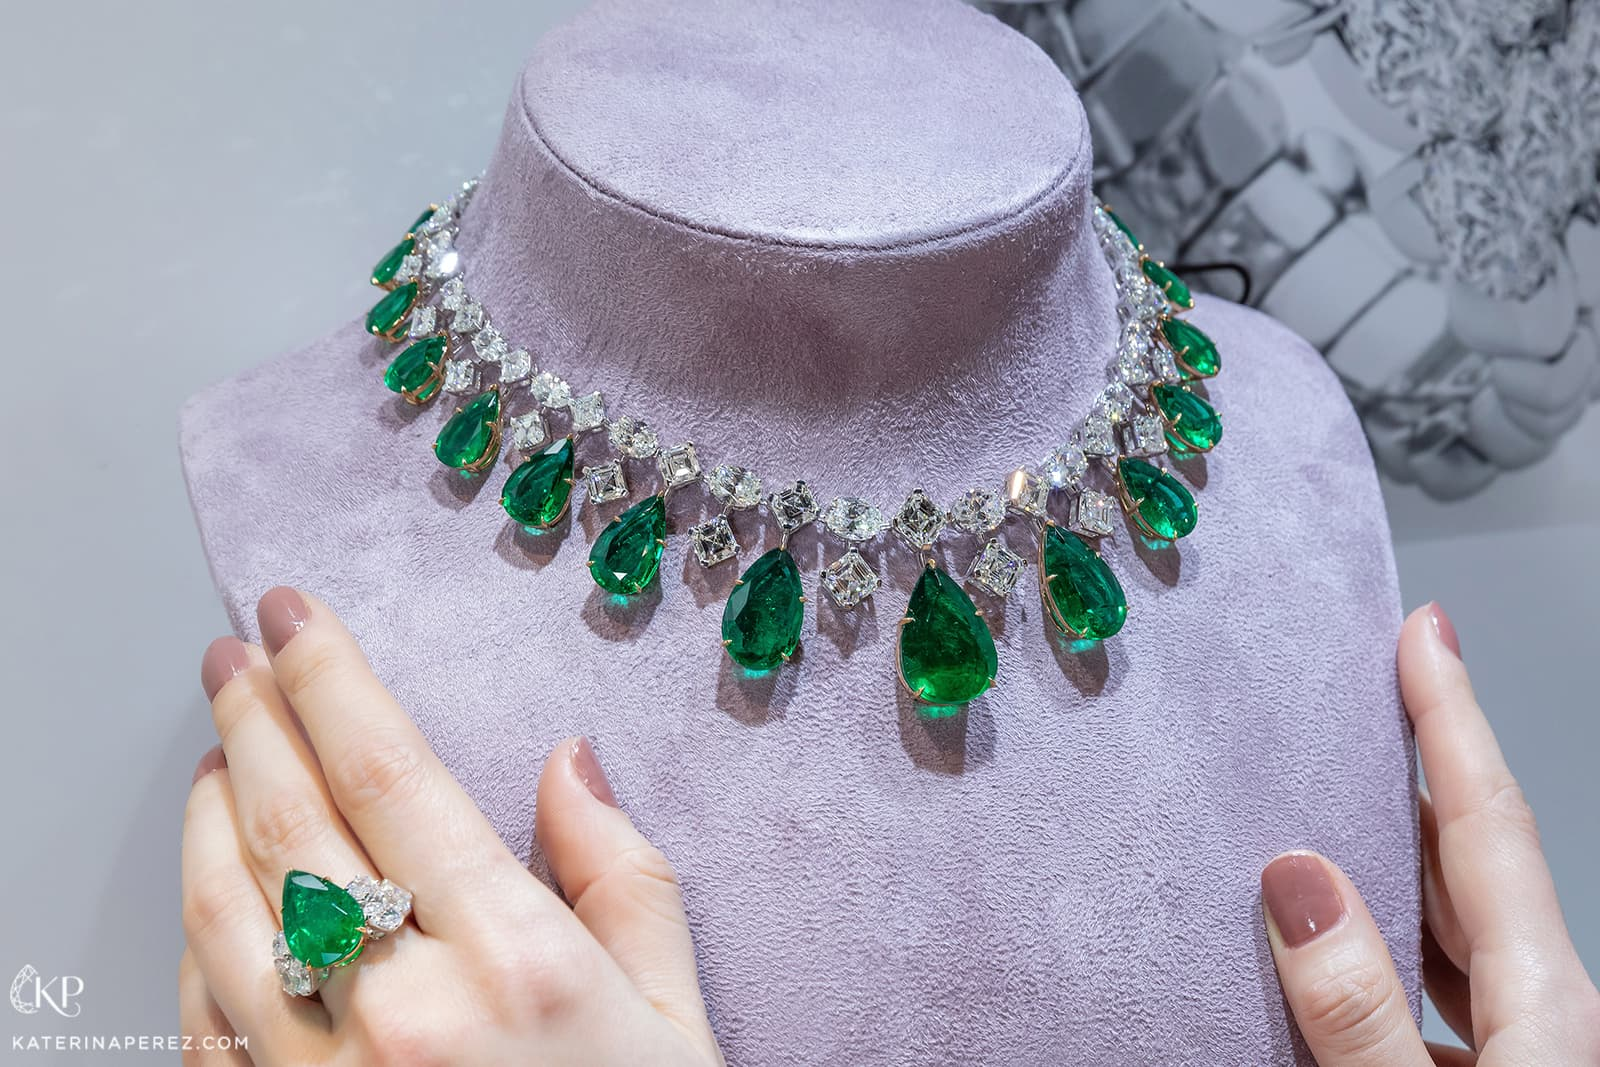 Luvor necklace with 125.70ct Colombian emeralds and diamonds in white gold, and emerald and diamond ring